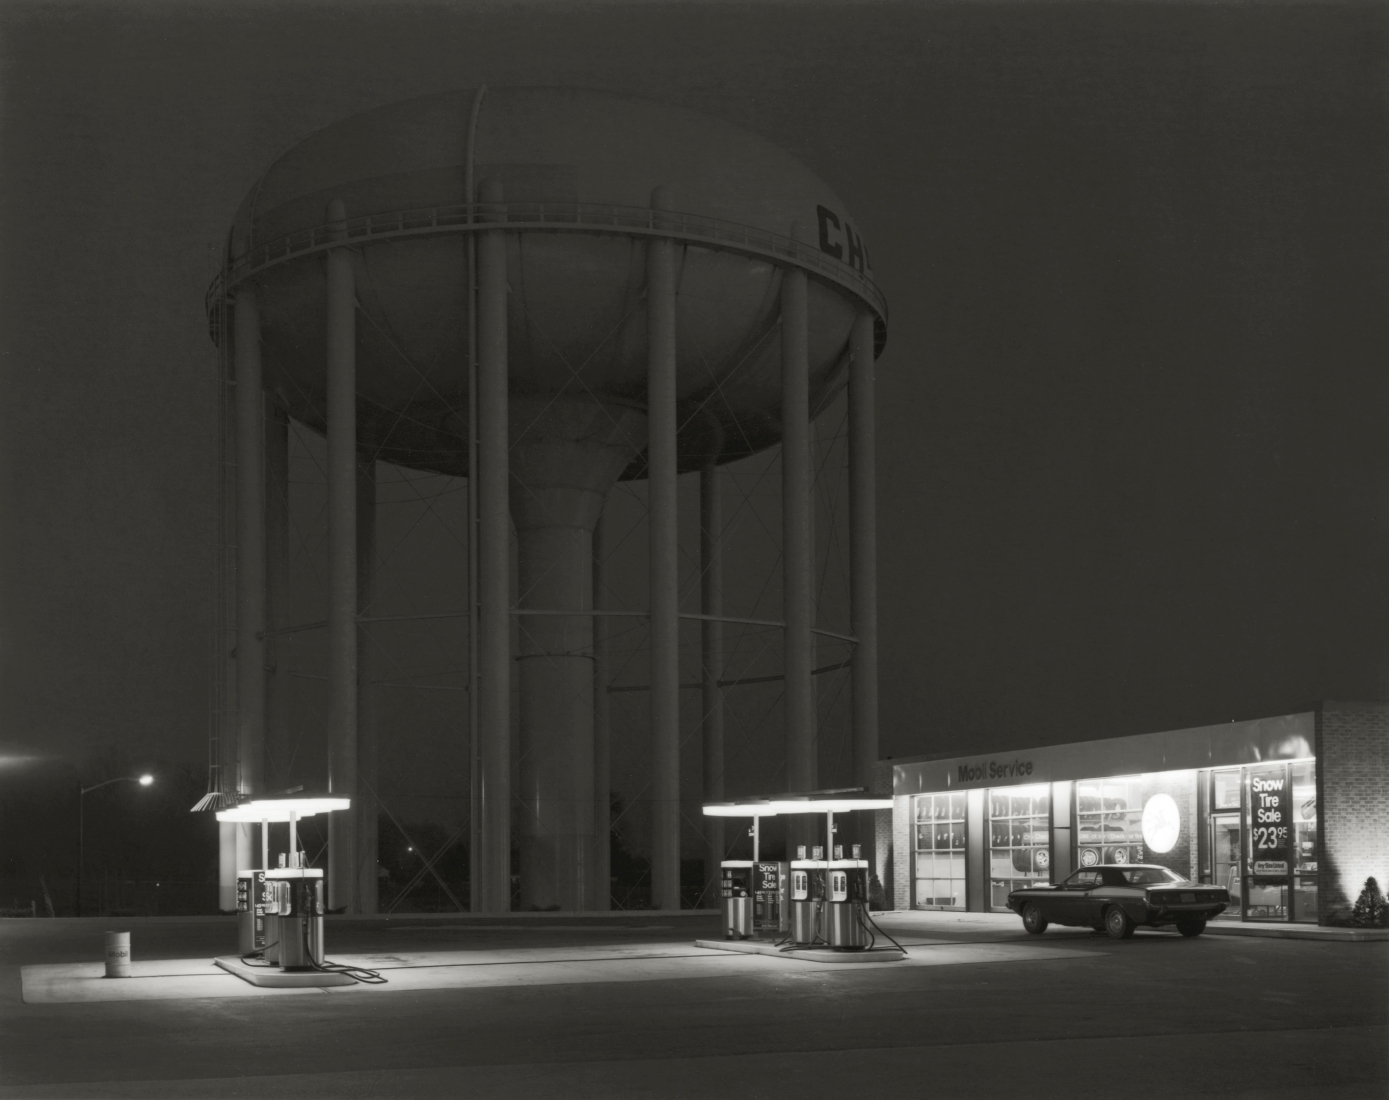 George Tice: A Celebration